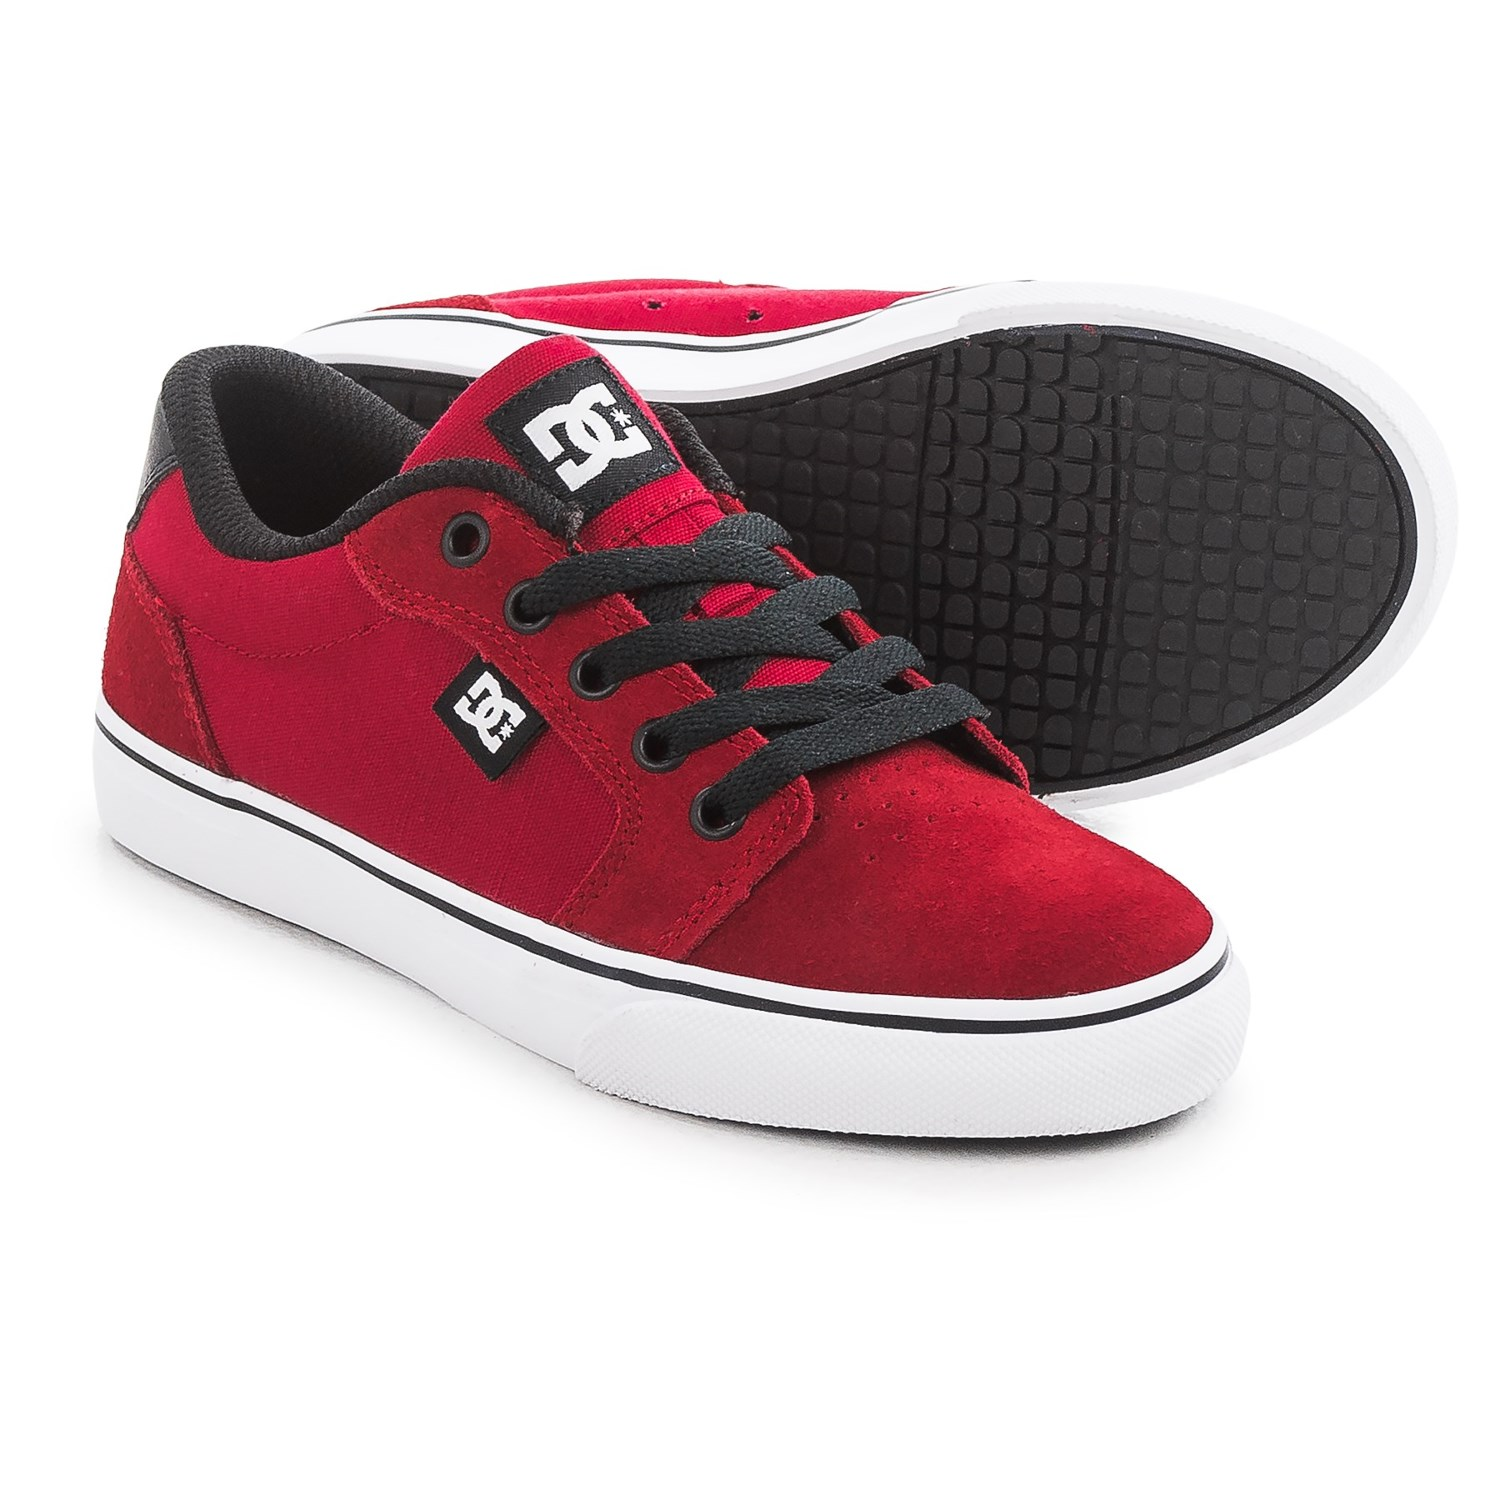 Boys Dc Shoes Clearance